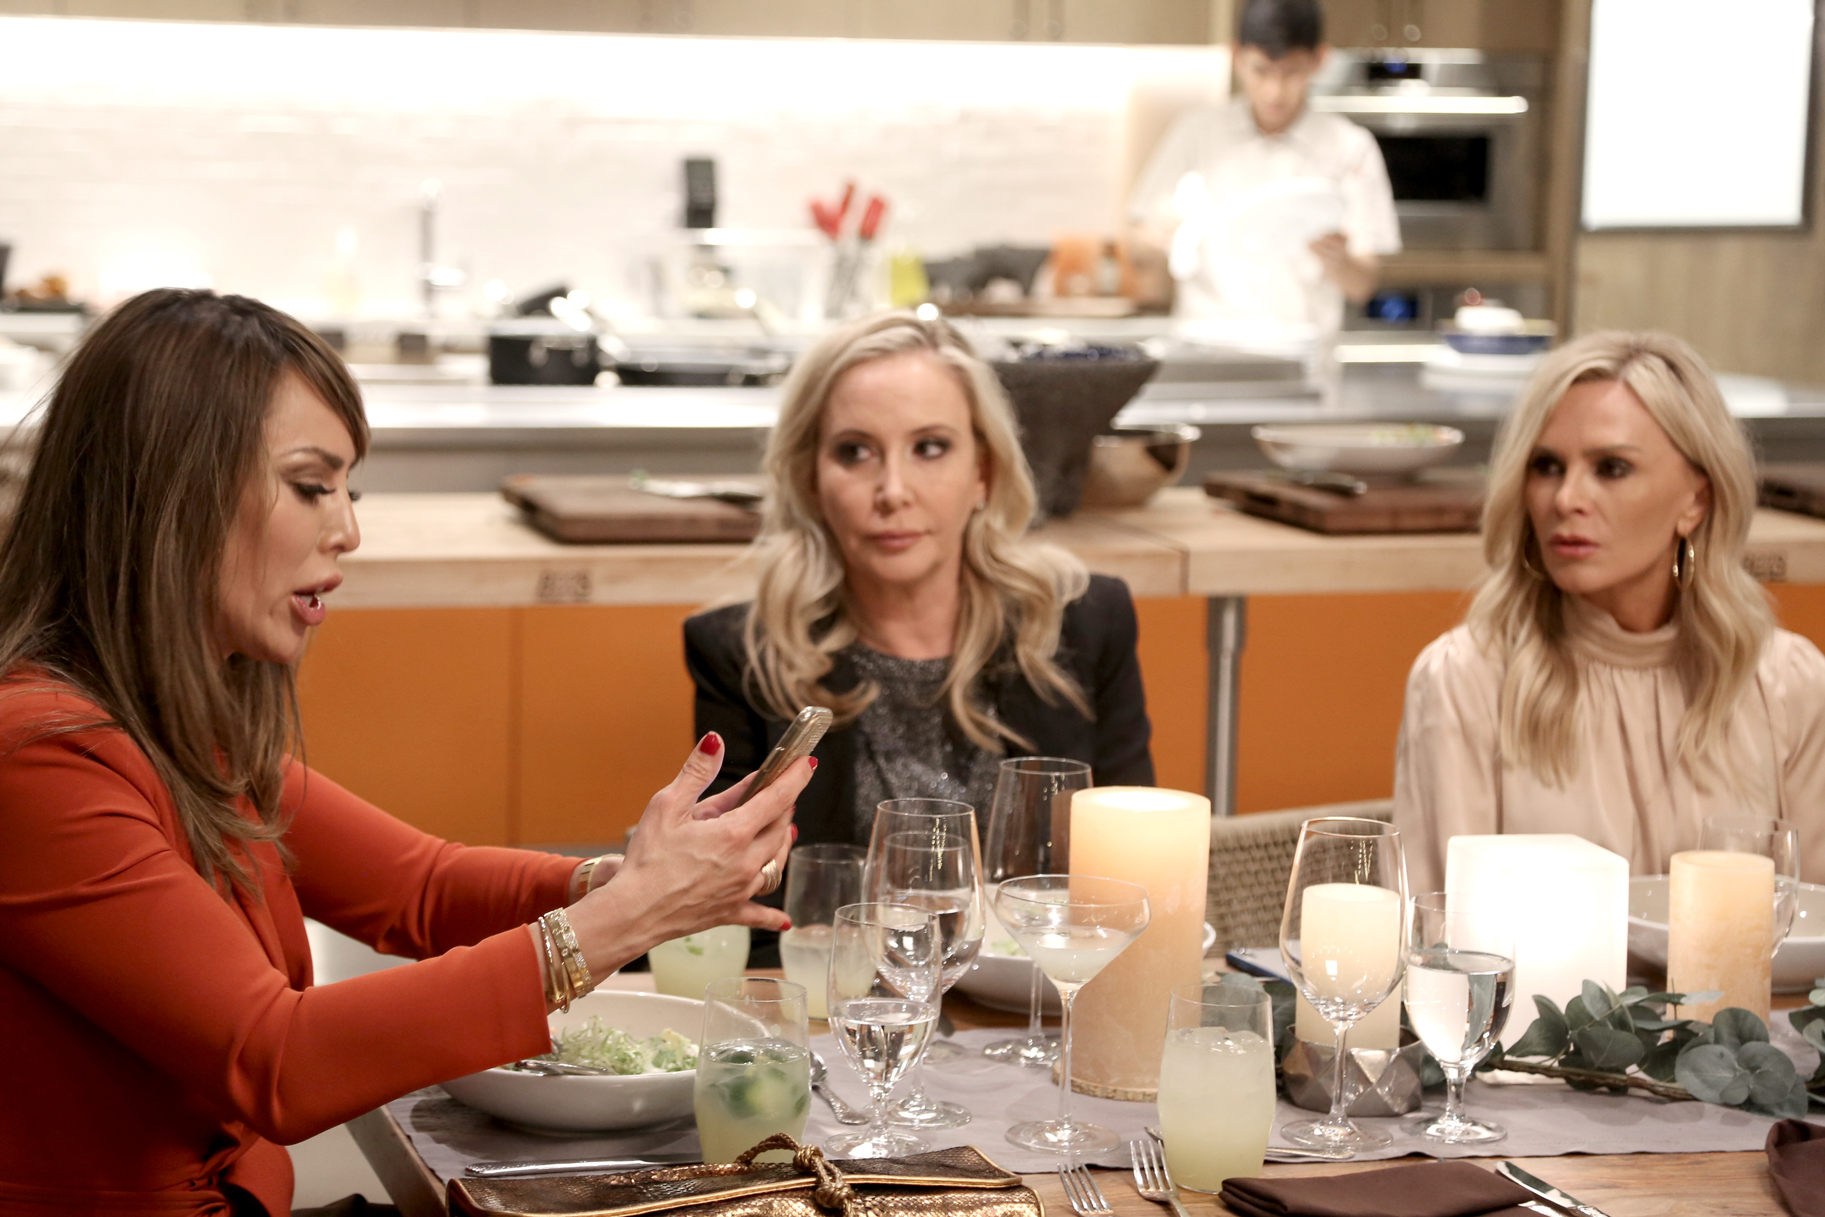 Kelly Dodd, Shannon Storms Beador, Tamra Judge on The Real Housewives of Orange County Arizona Trip